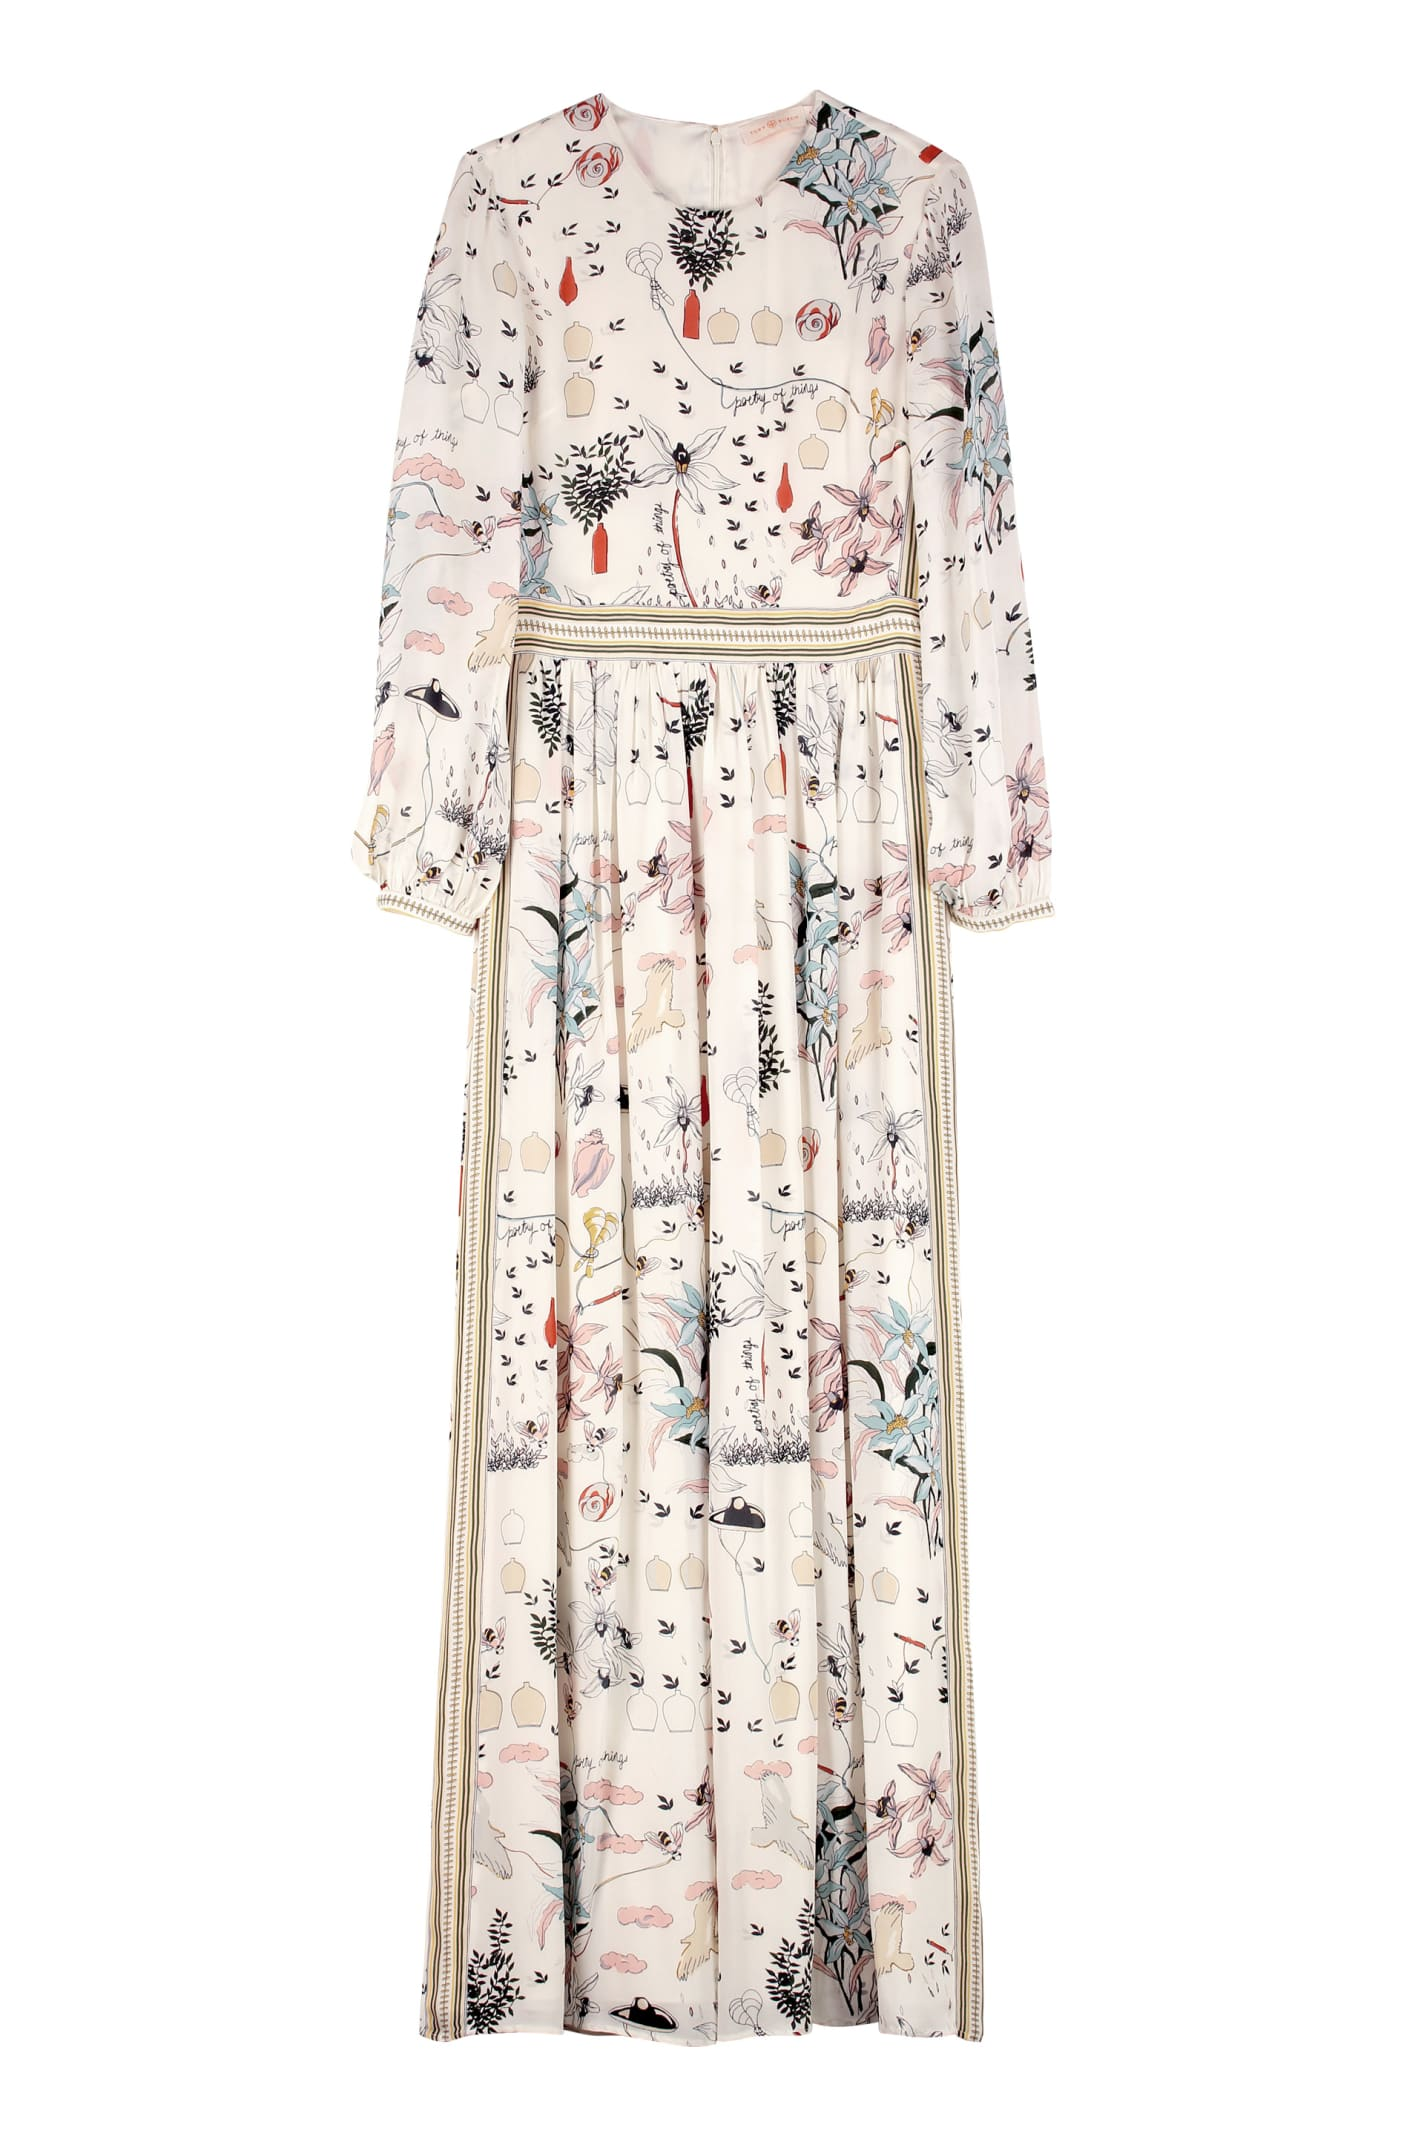 Tory Burch Printed Silk Long Dress